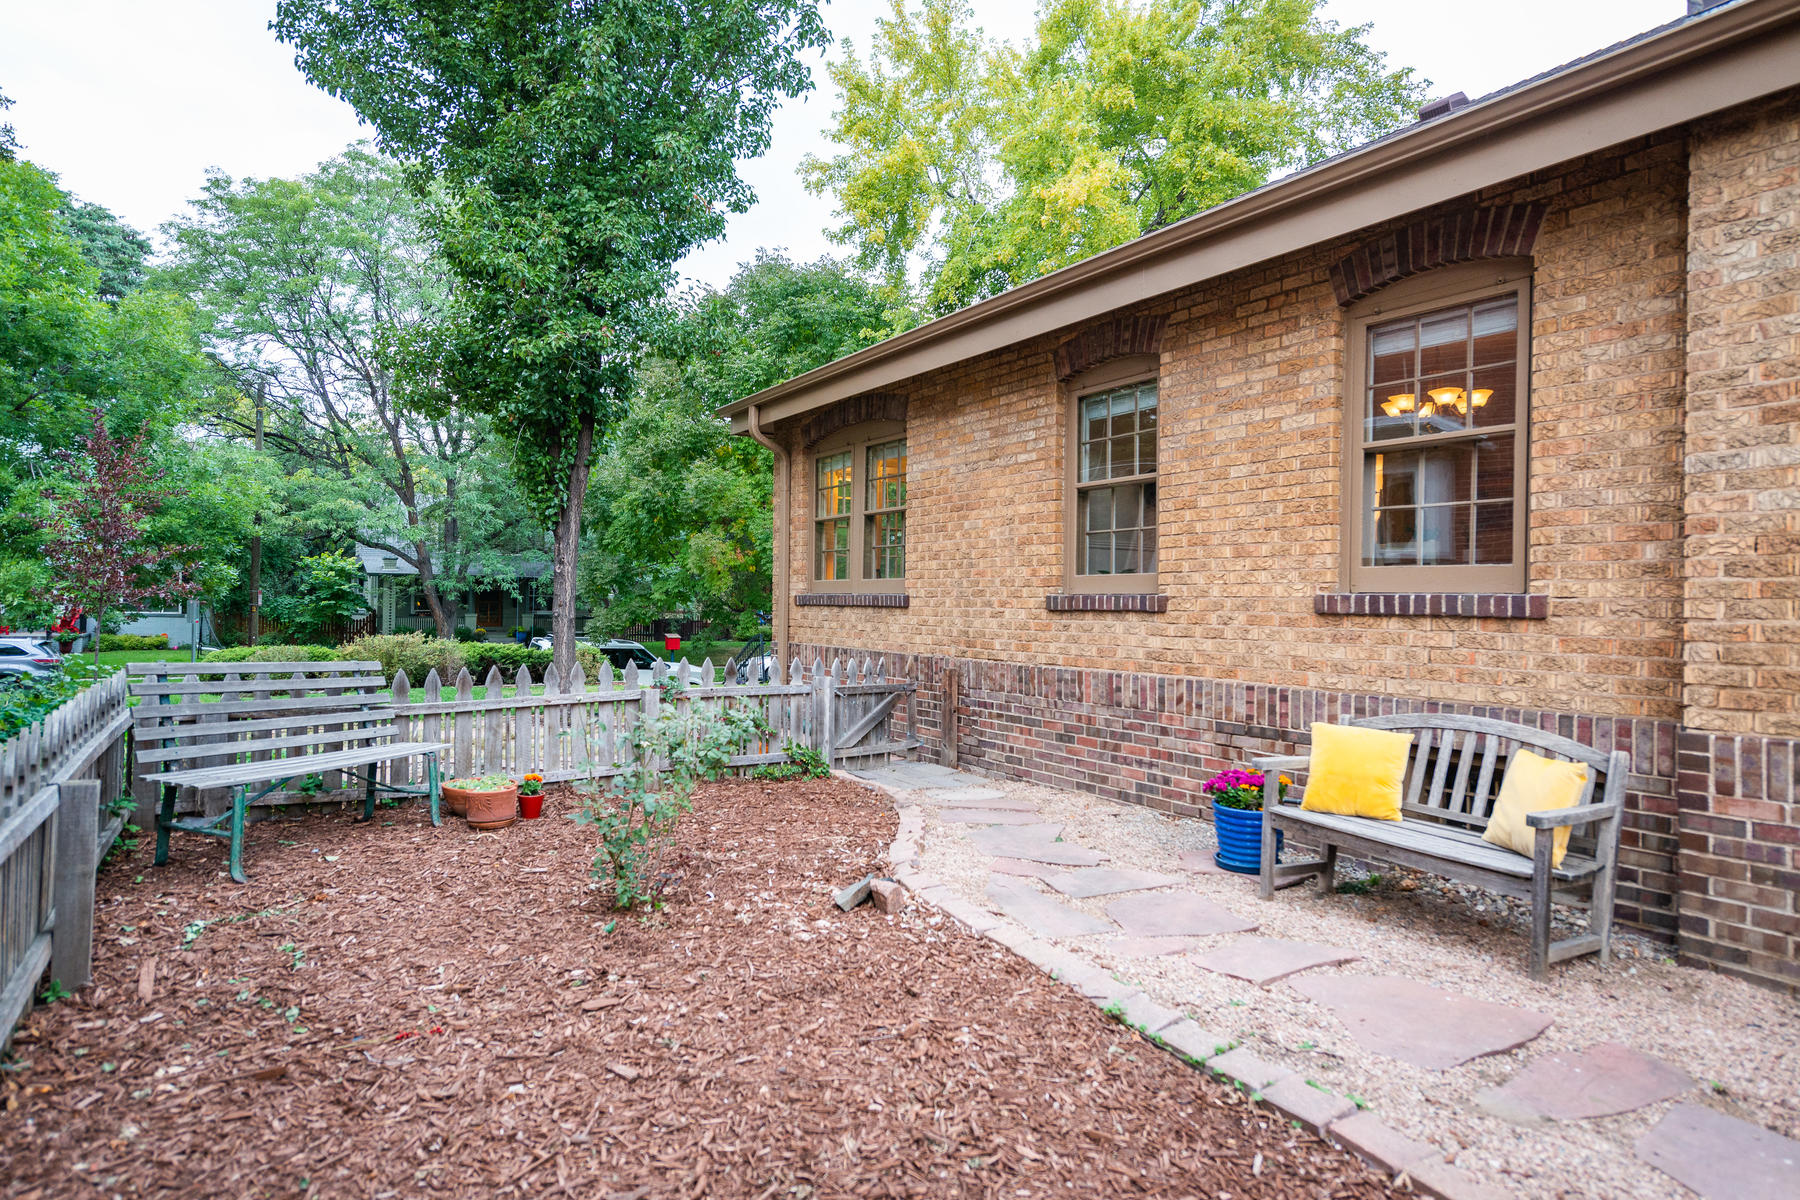 Additional photo for property listing at BIG WINDOWS, LARGE ROOMS & OPEN/SPACIOUS FLOORPLAN 2360 Dahlia St Denver, Colorado 80207 United States